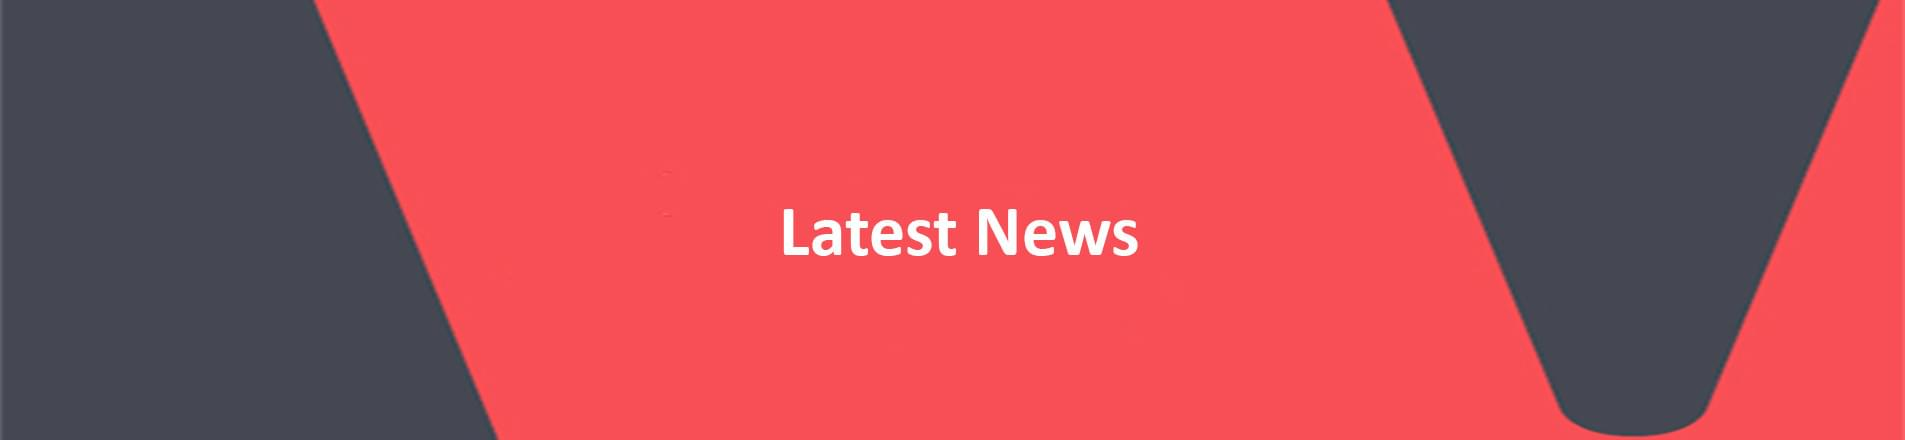 red banner with white ext reading latest news